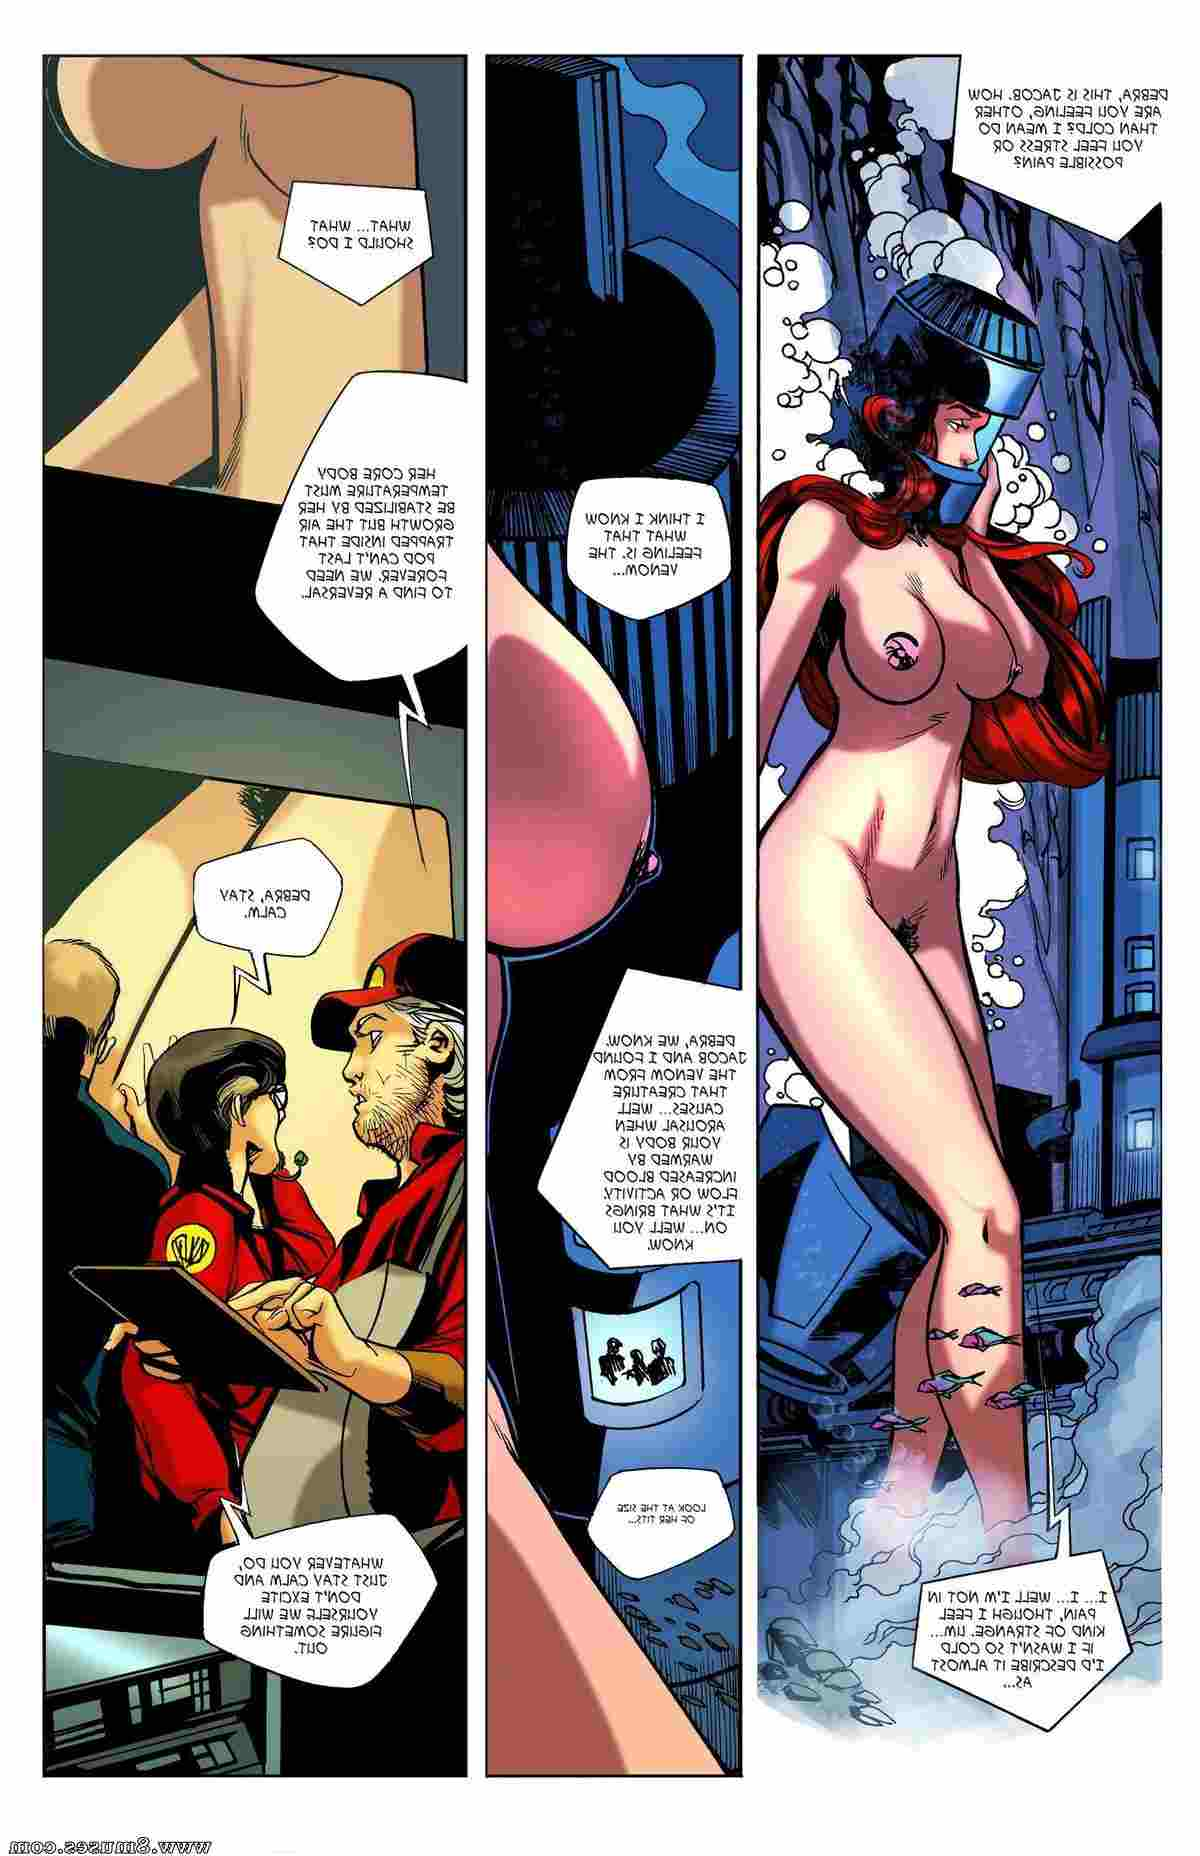 Giantess-Club-Comics/Bubbling-Up-from-the-Abyss Bubbling_Up_from_the_Abyss__8muses_-_Sex_and_Porn_Comics_28.jpg